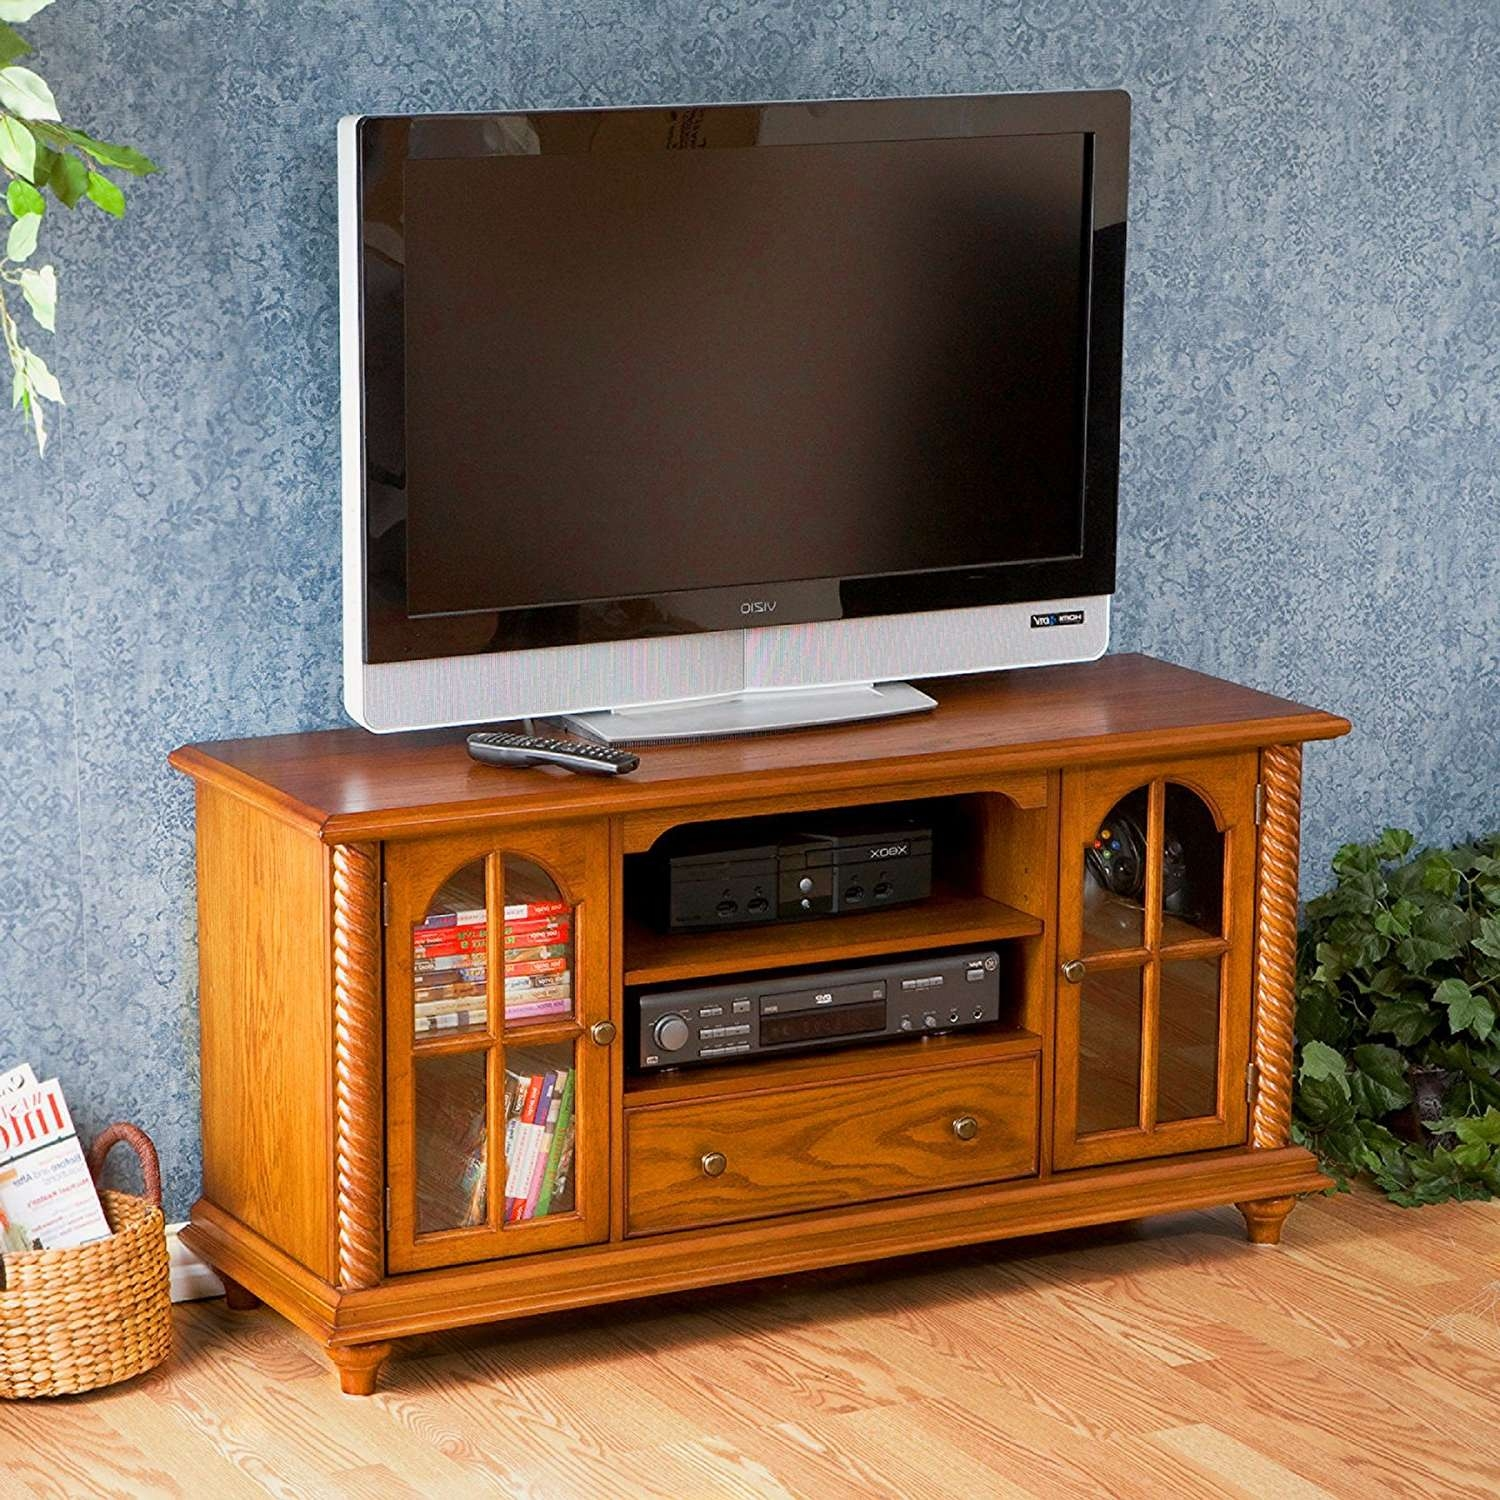 Innovative Designs Oak Tv Console | Marku Home Design Intended For Oak Tv Stands For Flat Screen (View 10 of 15)